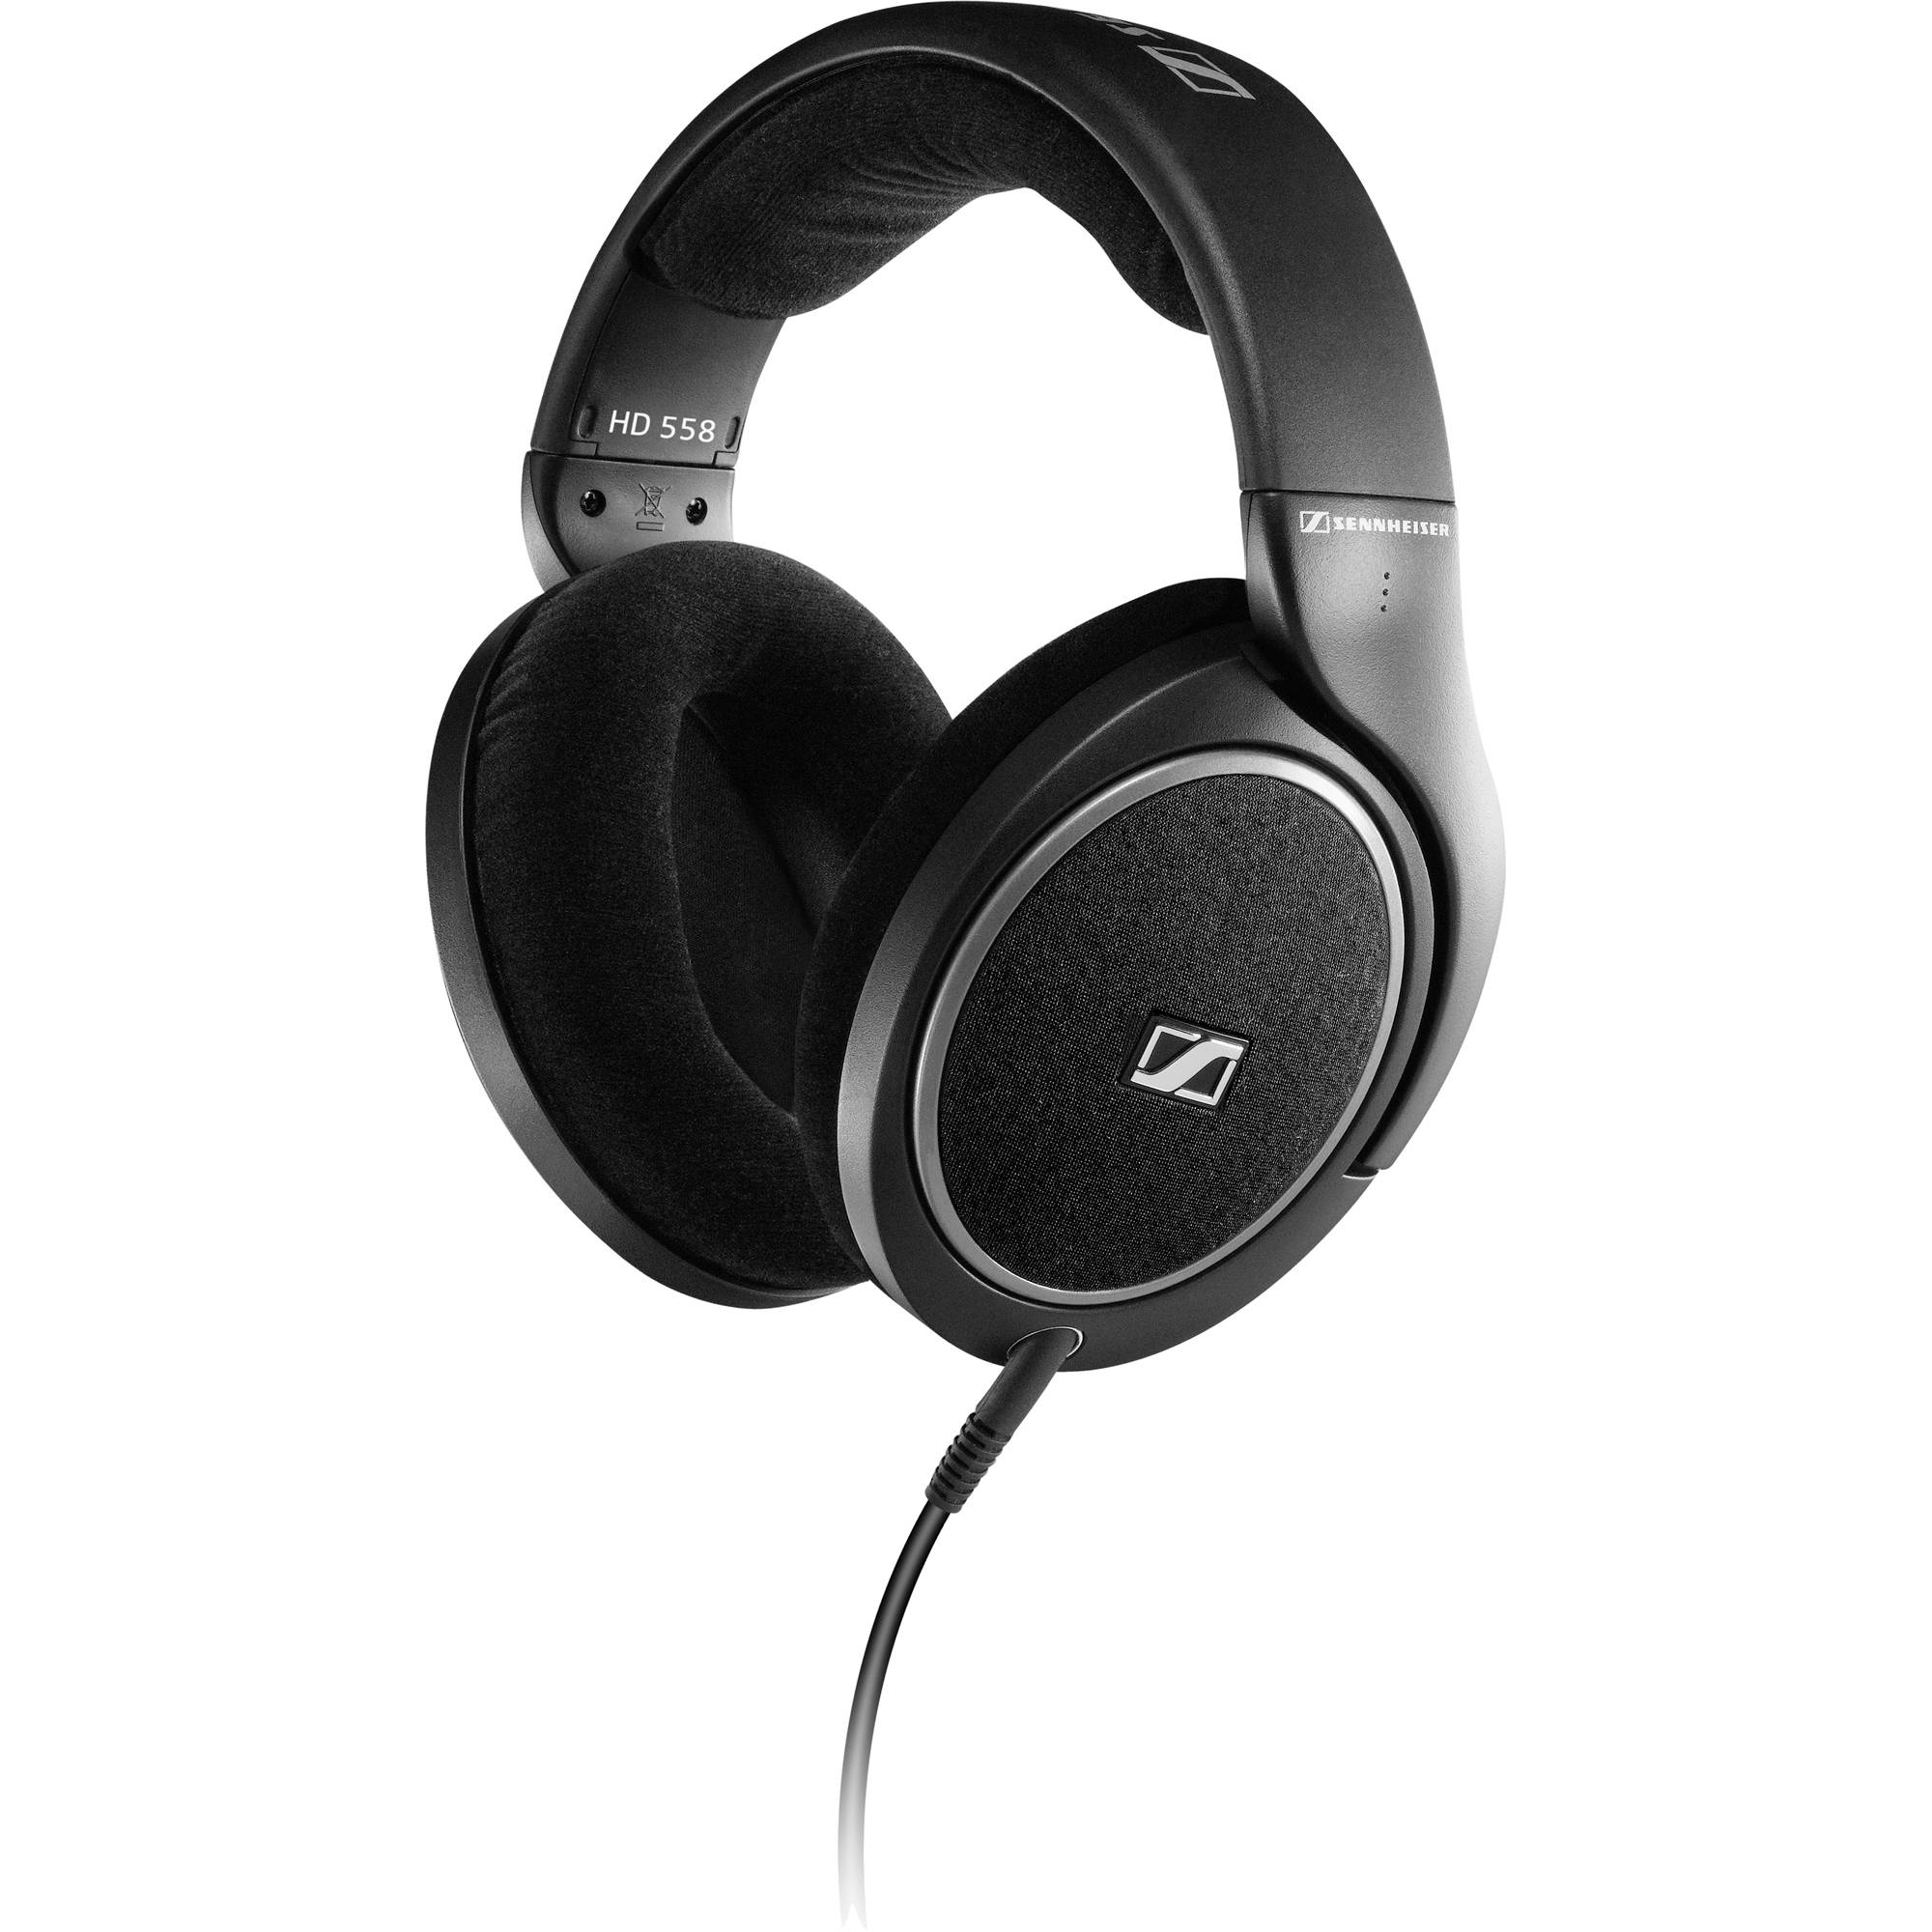 Sennheiser HD 558 Open-Back Around-Ear Stereo Headphones